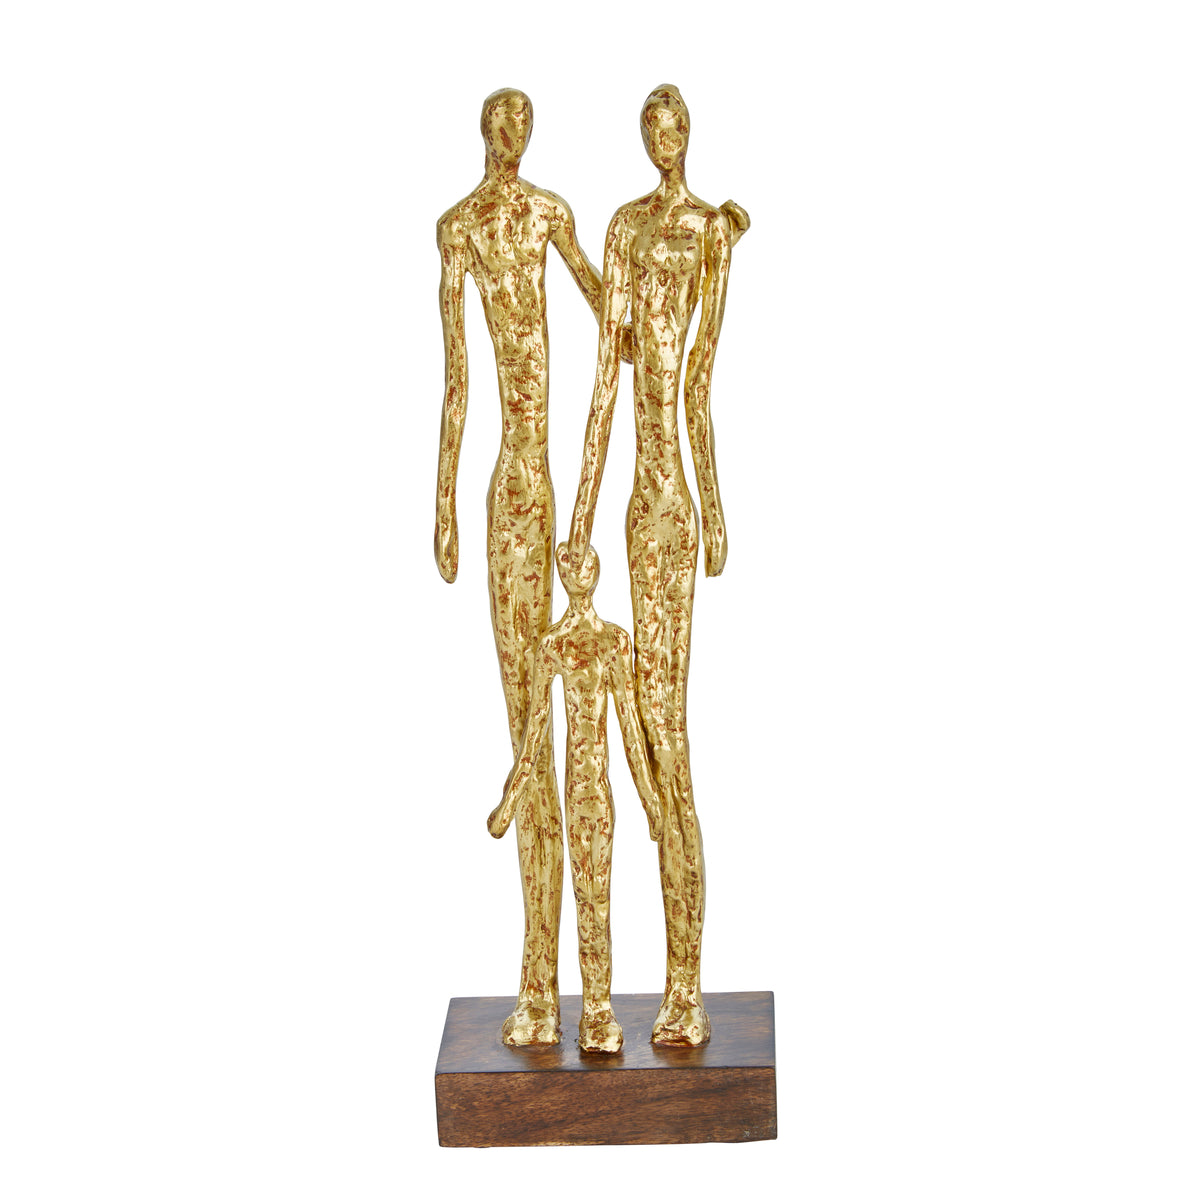 "Resin 16.5"" Family Figurine, Gold - Casa Muebles"